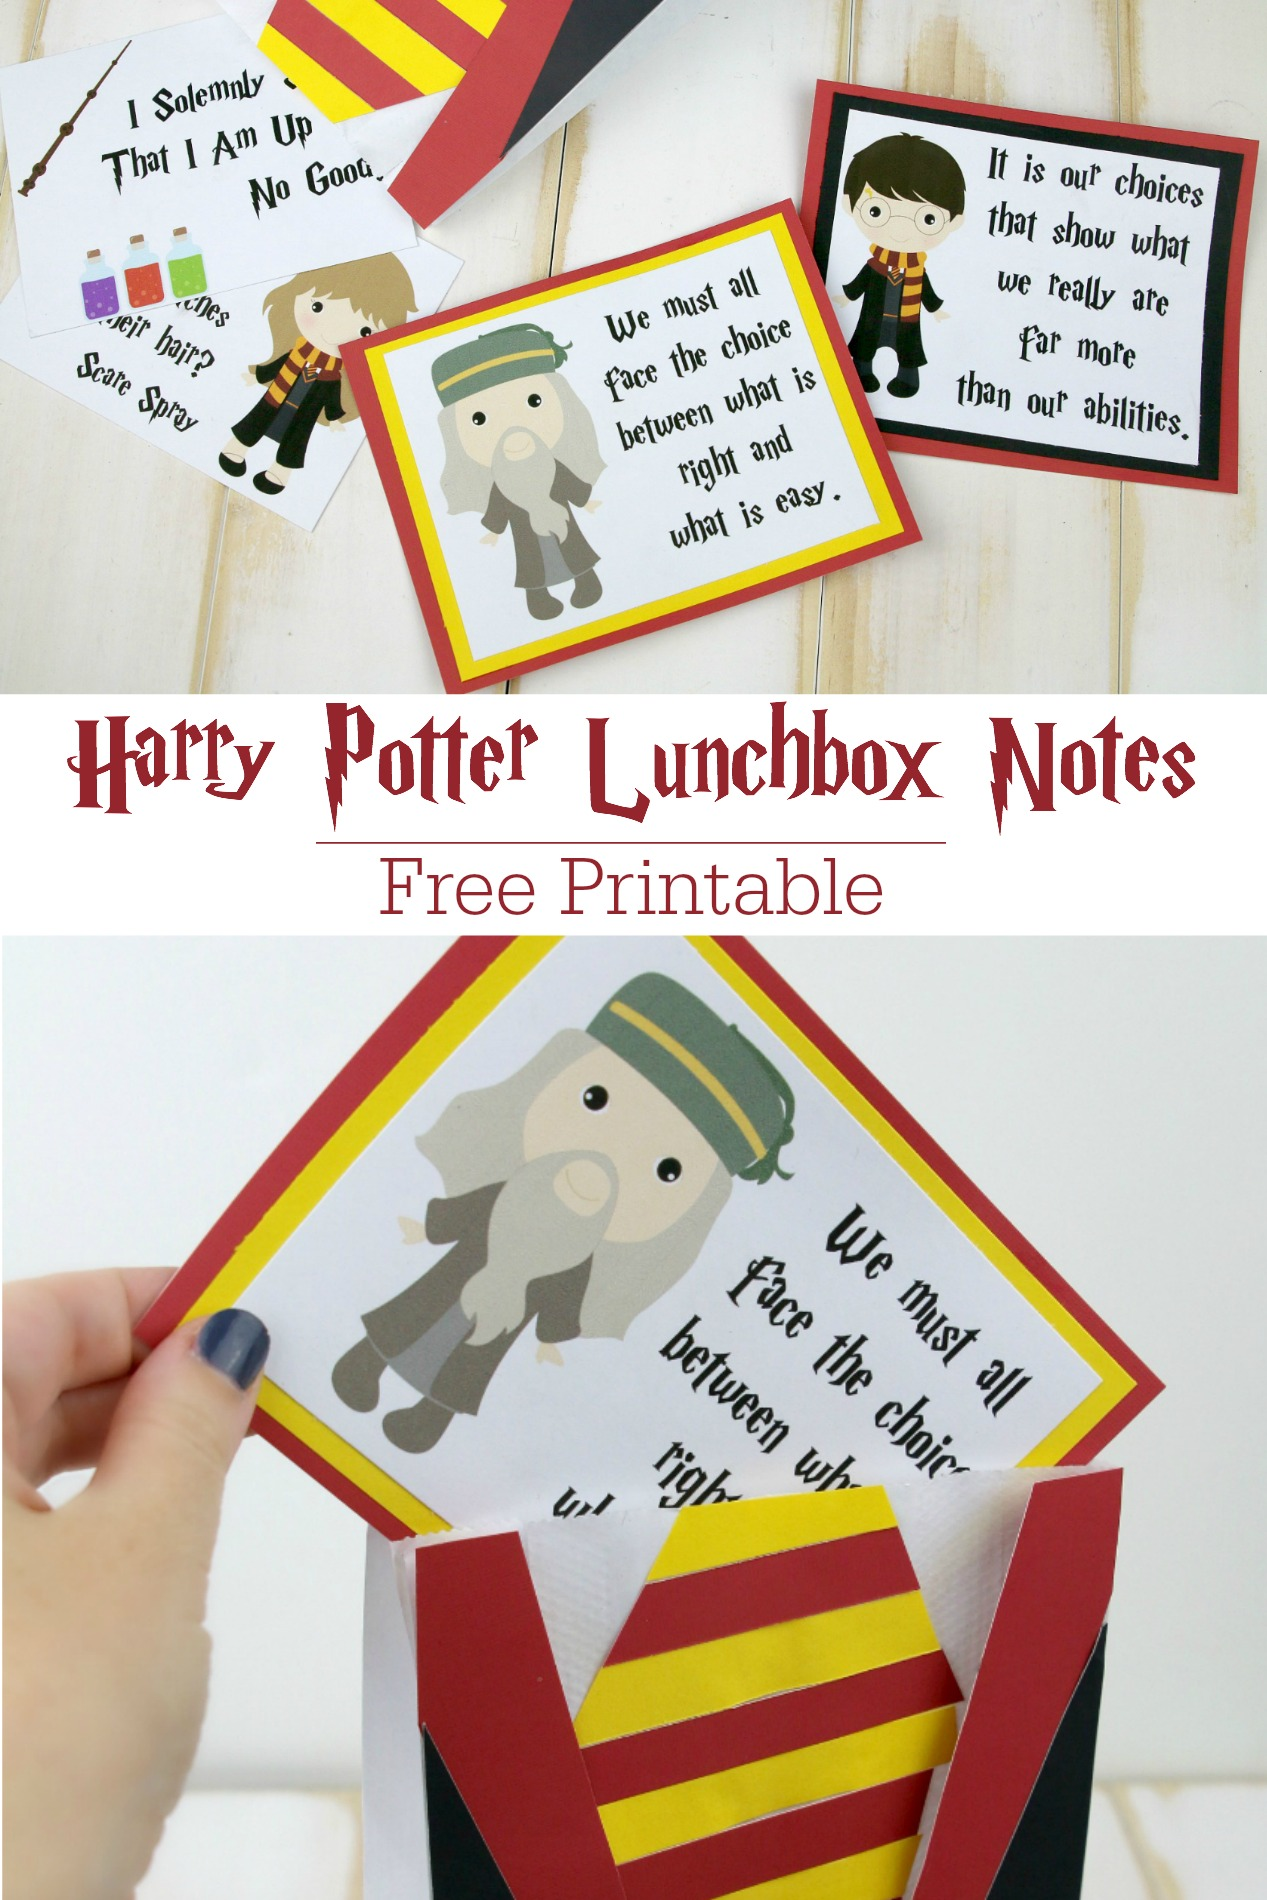 Free Printable Harry Potter Lunchbox Notes pin